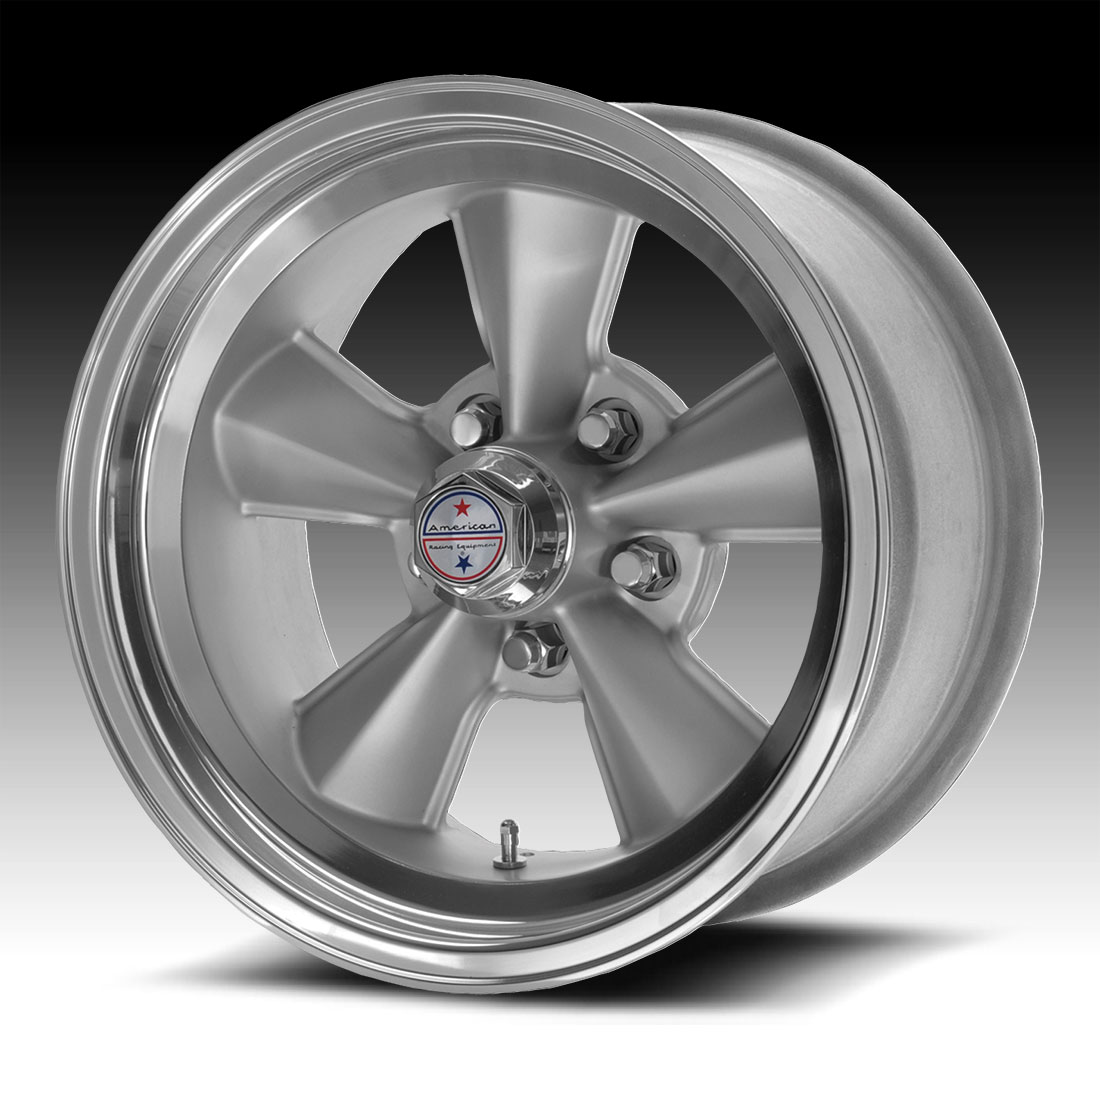 American Racing Tto Vn309 309 Vintage Silver Machined